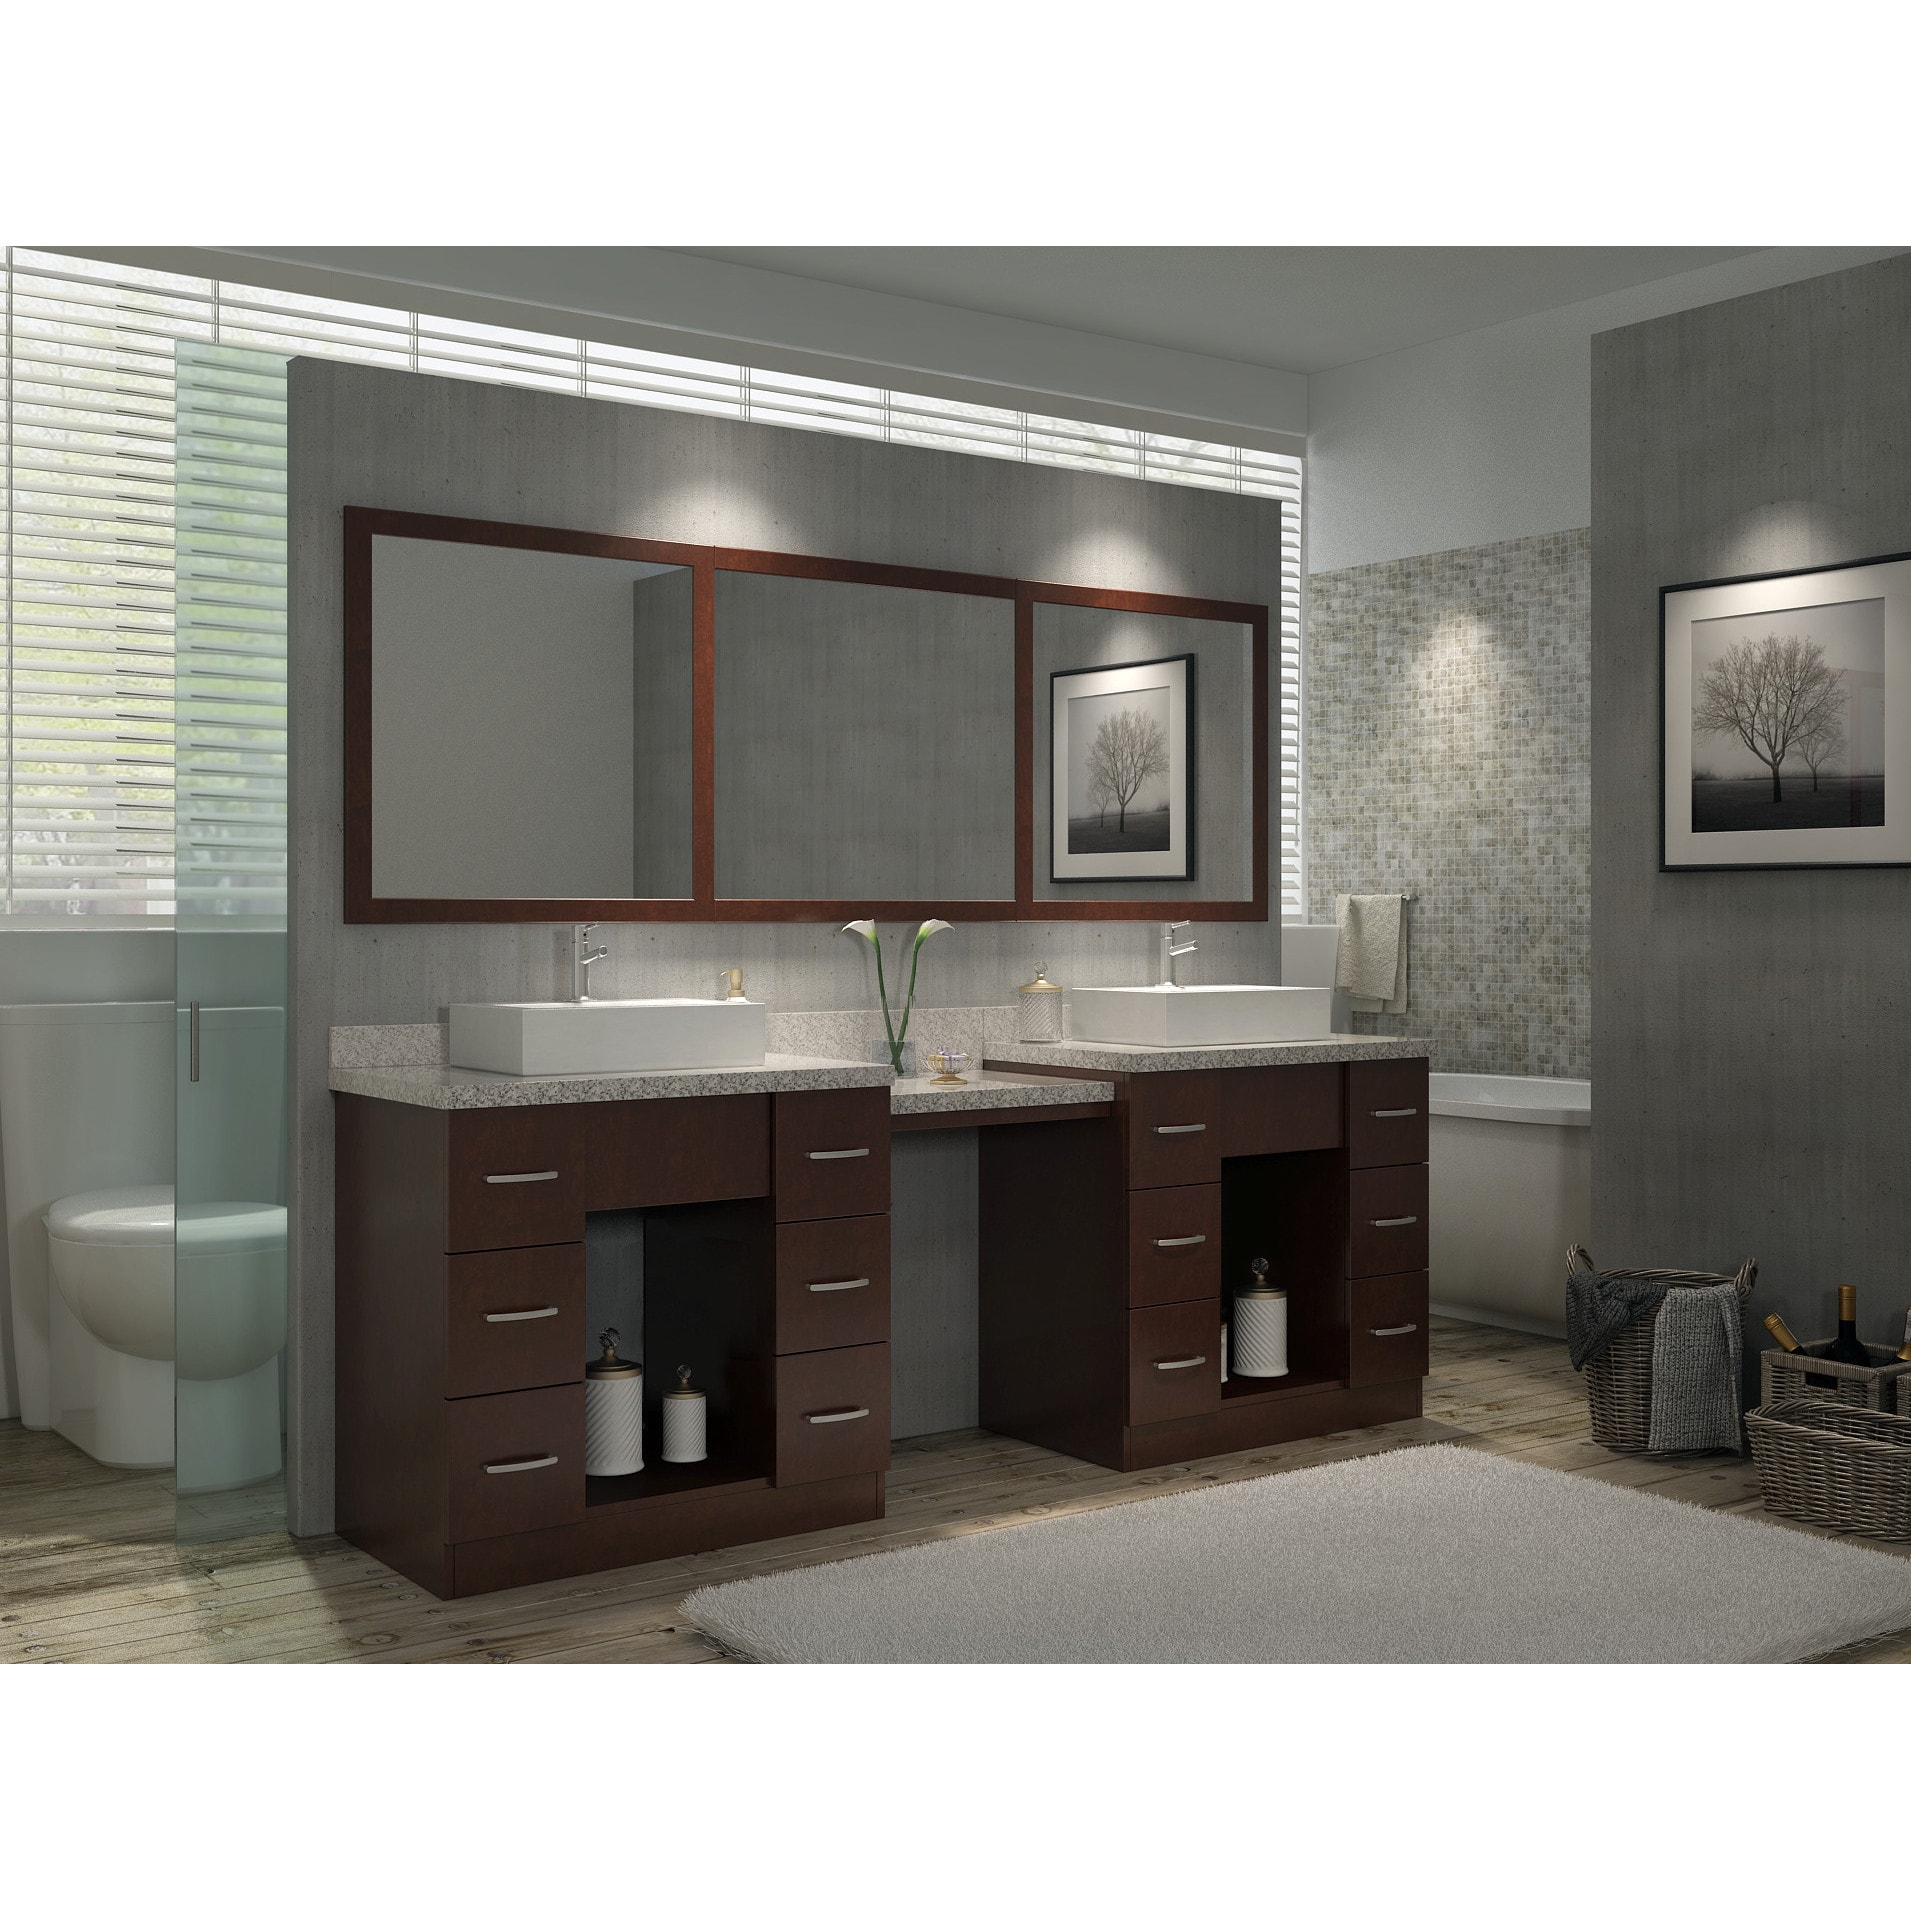 66 Inch Double Sink Vanity. Roosevelt 97 inch Double Sink Vanity Set in Walnut with Makeup Table  Free Shipping Today Overstock com 17246048